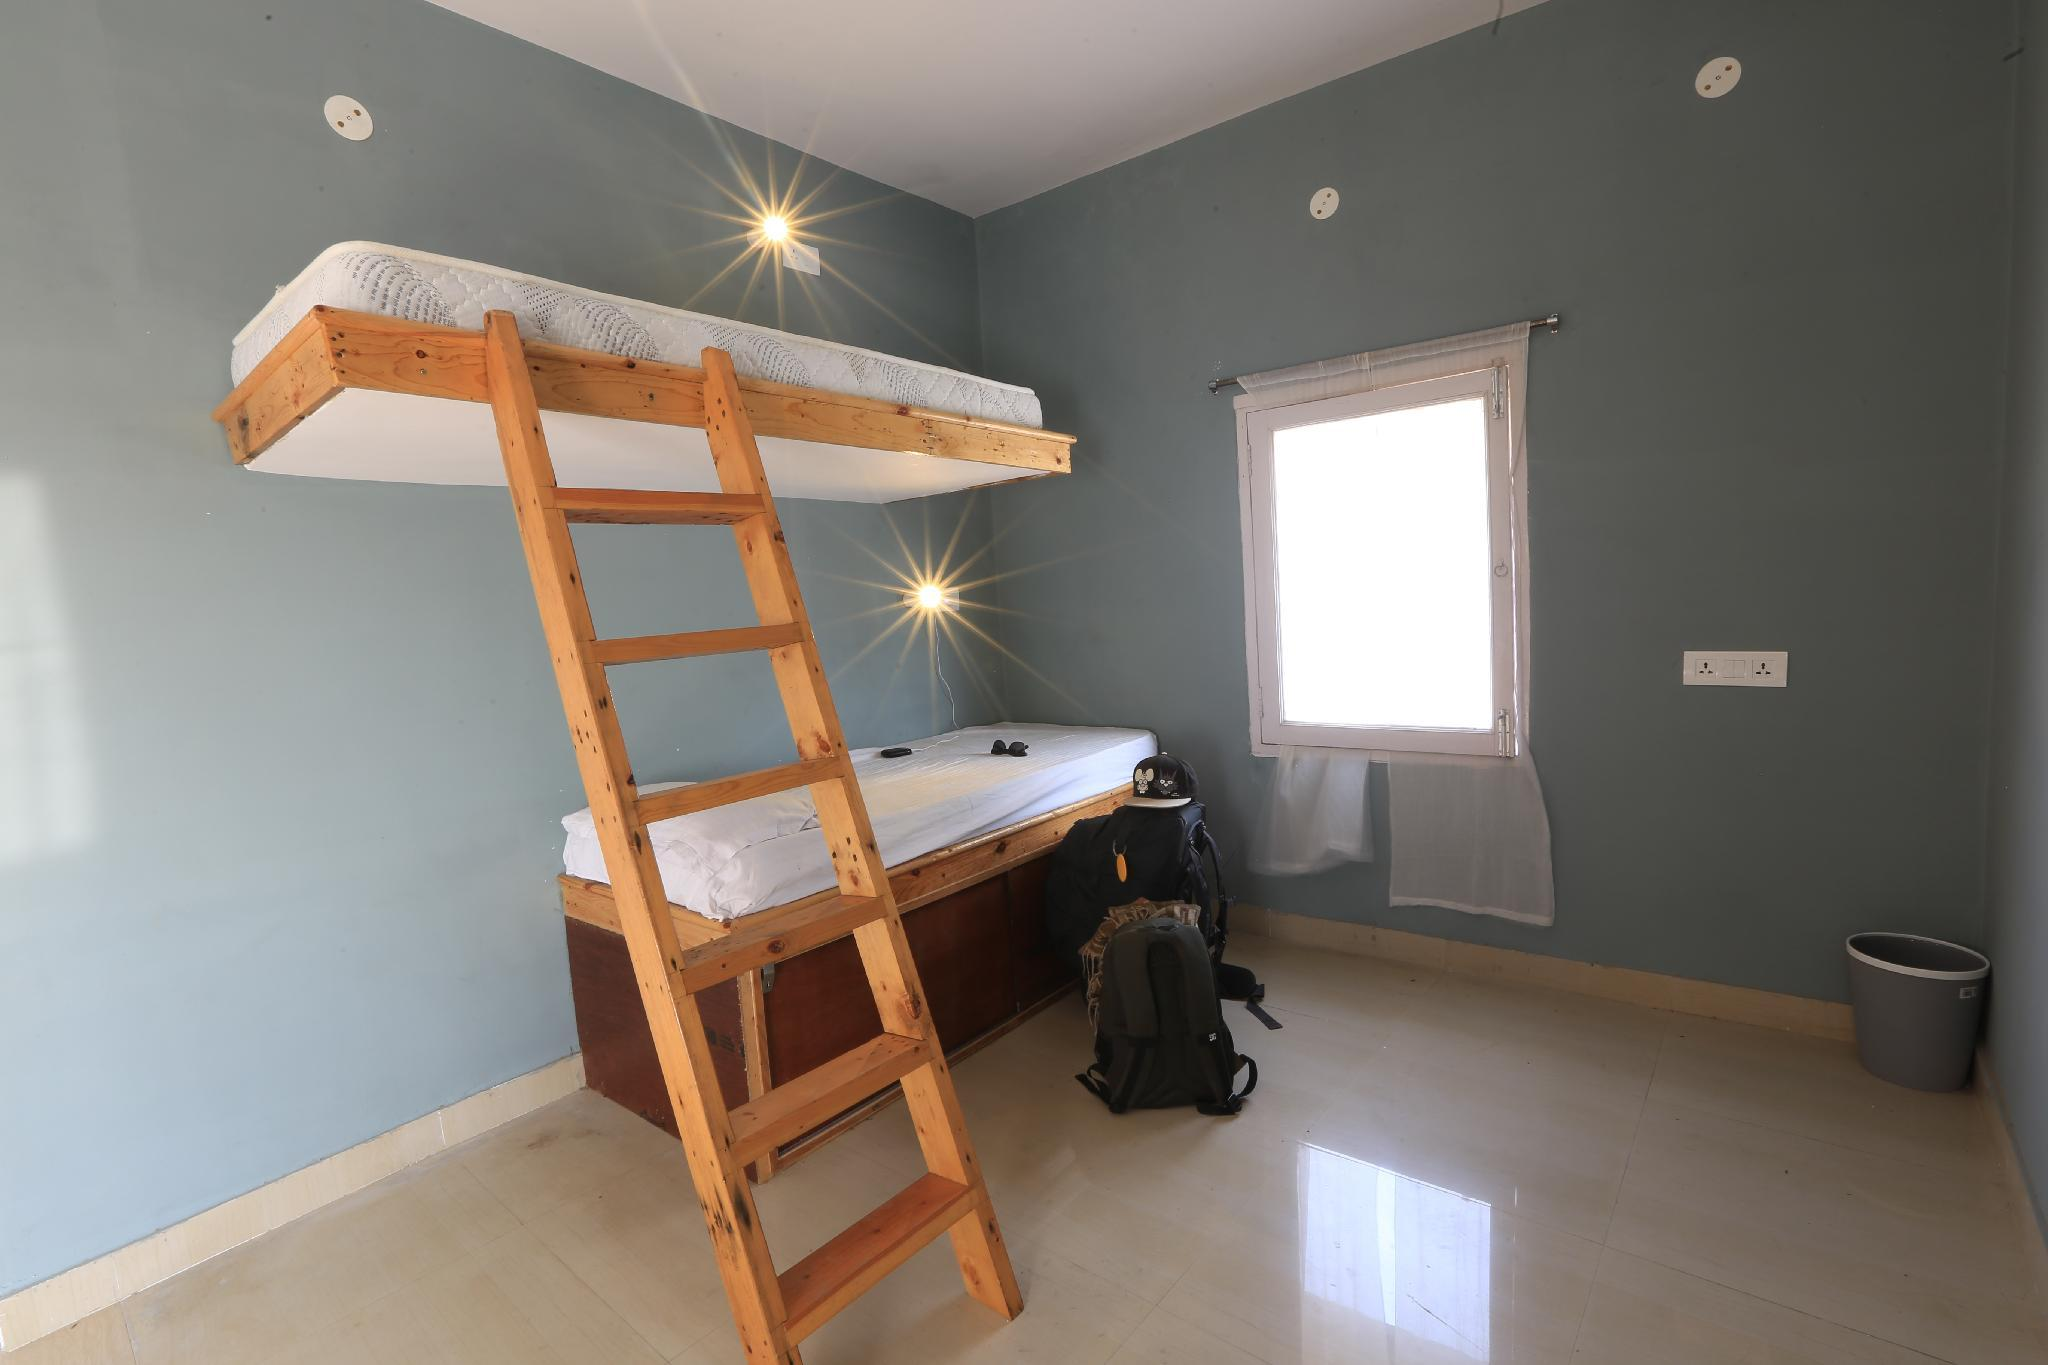 1 Posto Letto in Dormitorio Misto con 6 Letti (1 Person in 6-Bed Dormitory - Mixed)